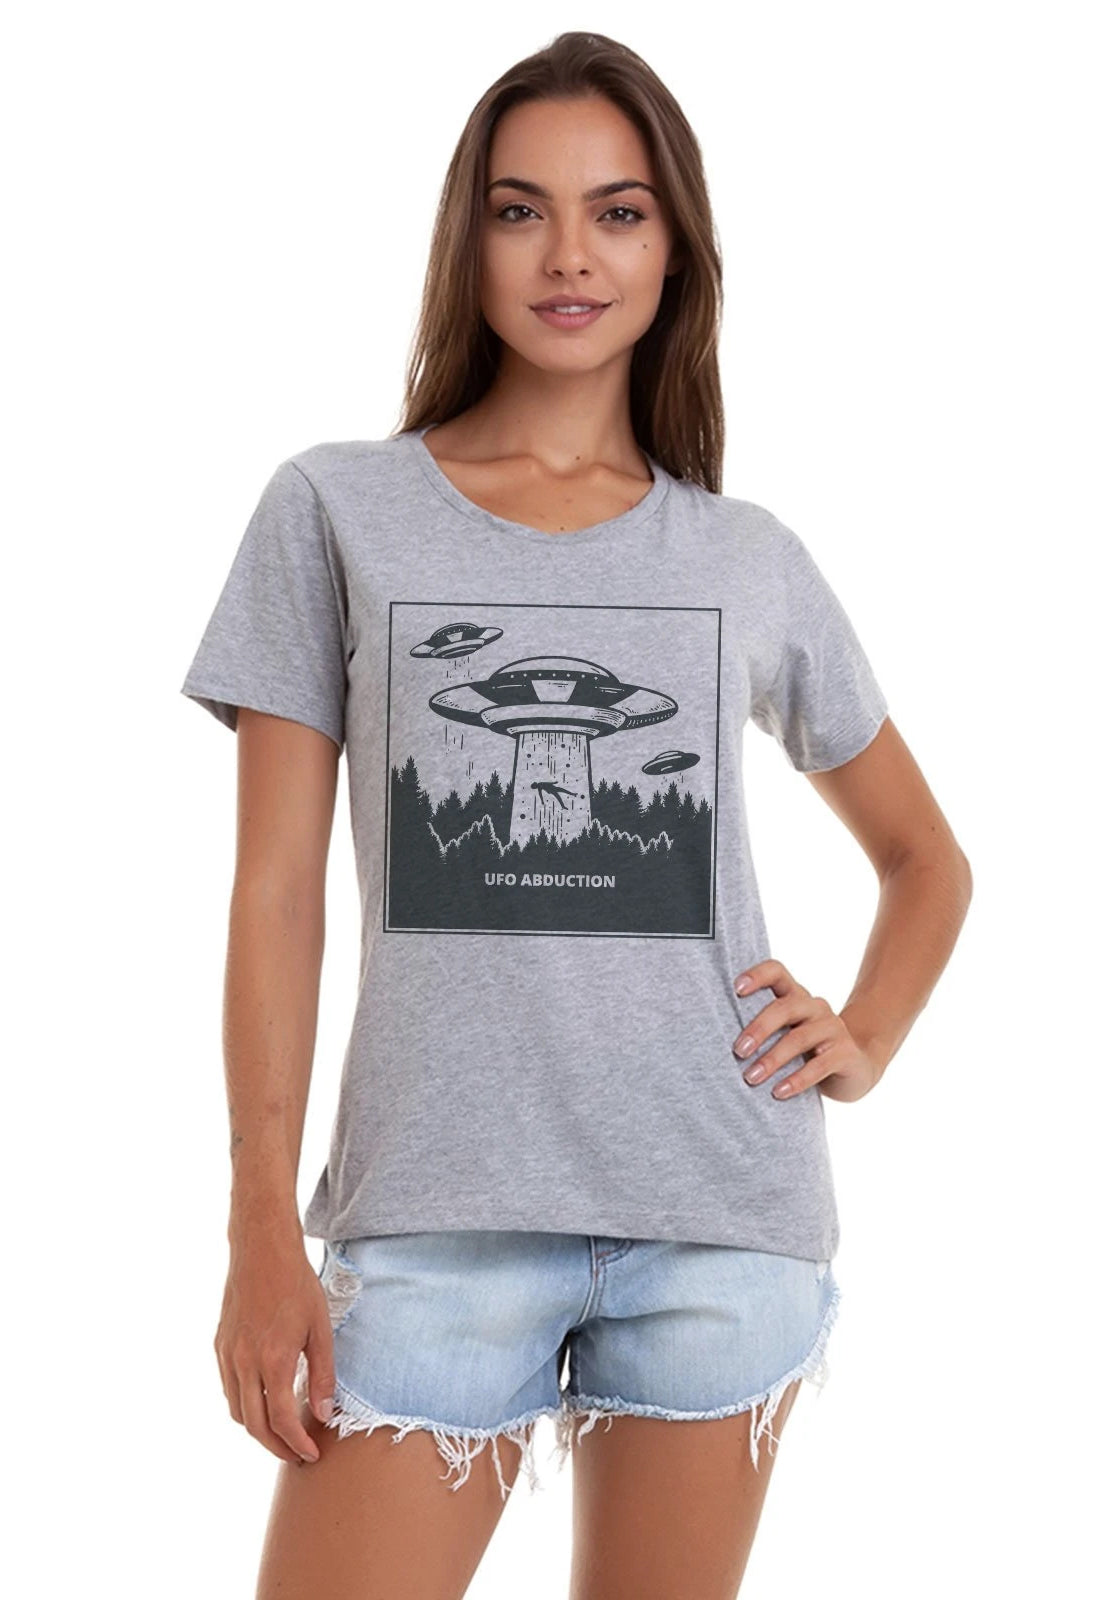 CAMISETA FEMININA BÁSICA ESTAMPADA JAY JAY - UFO ABDUCTION - SHOP JOSS